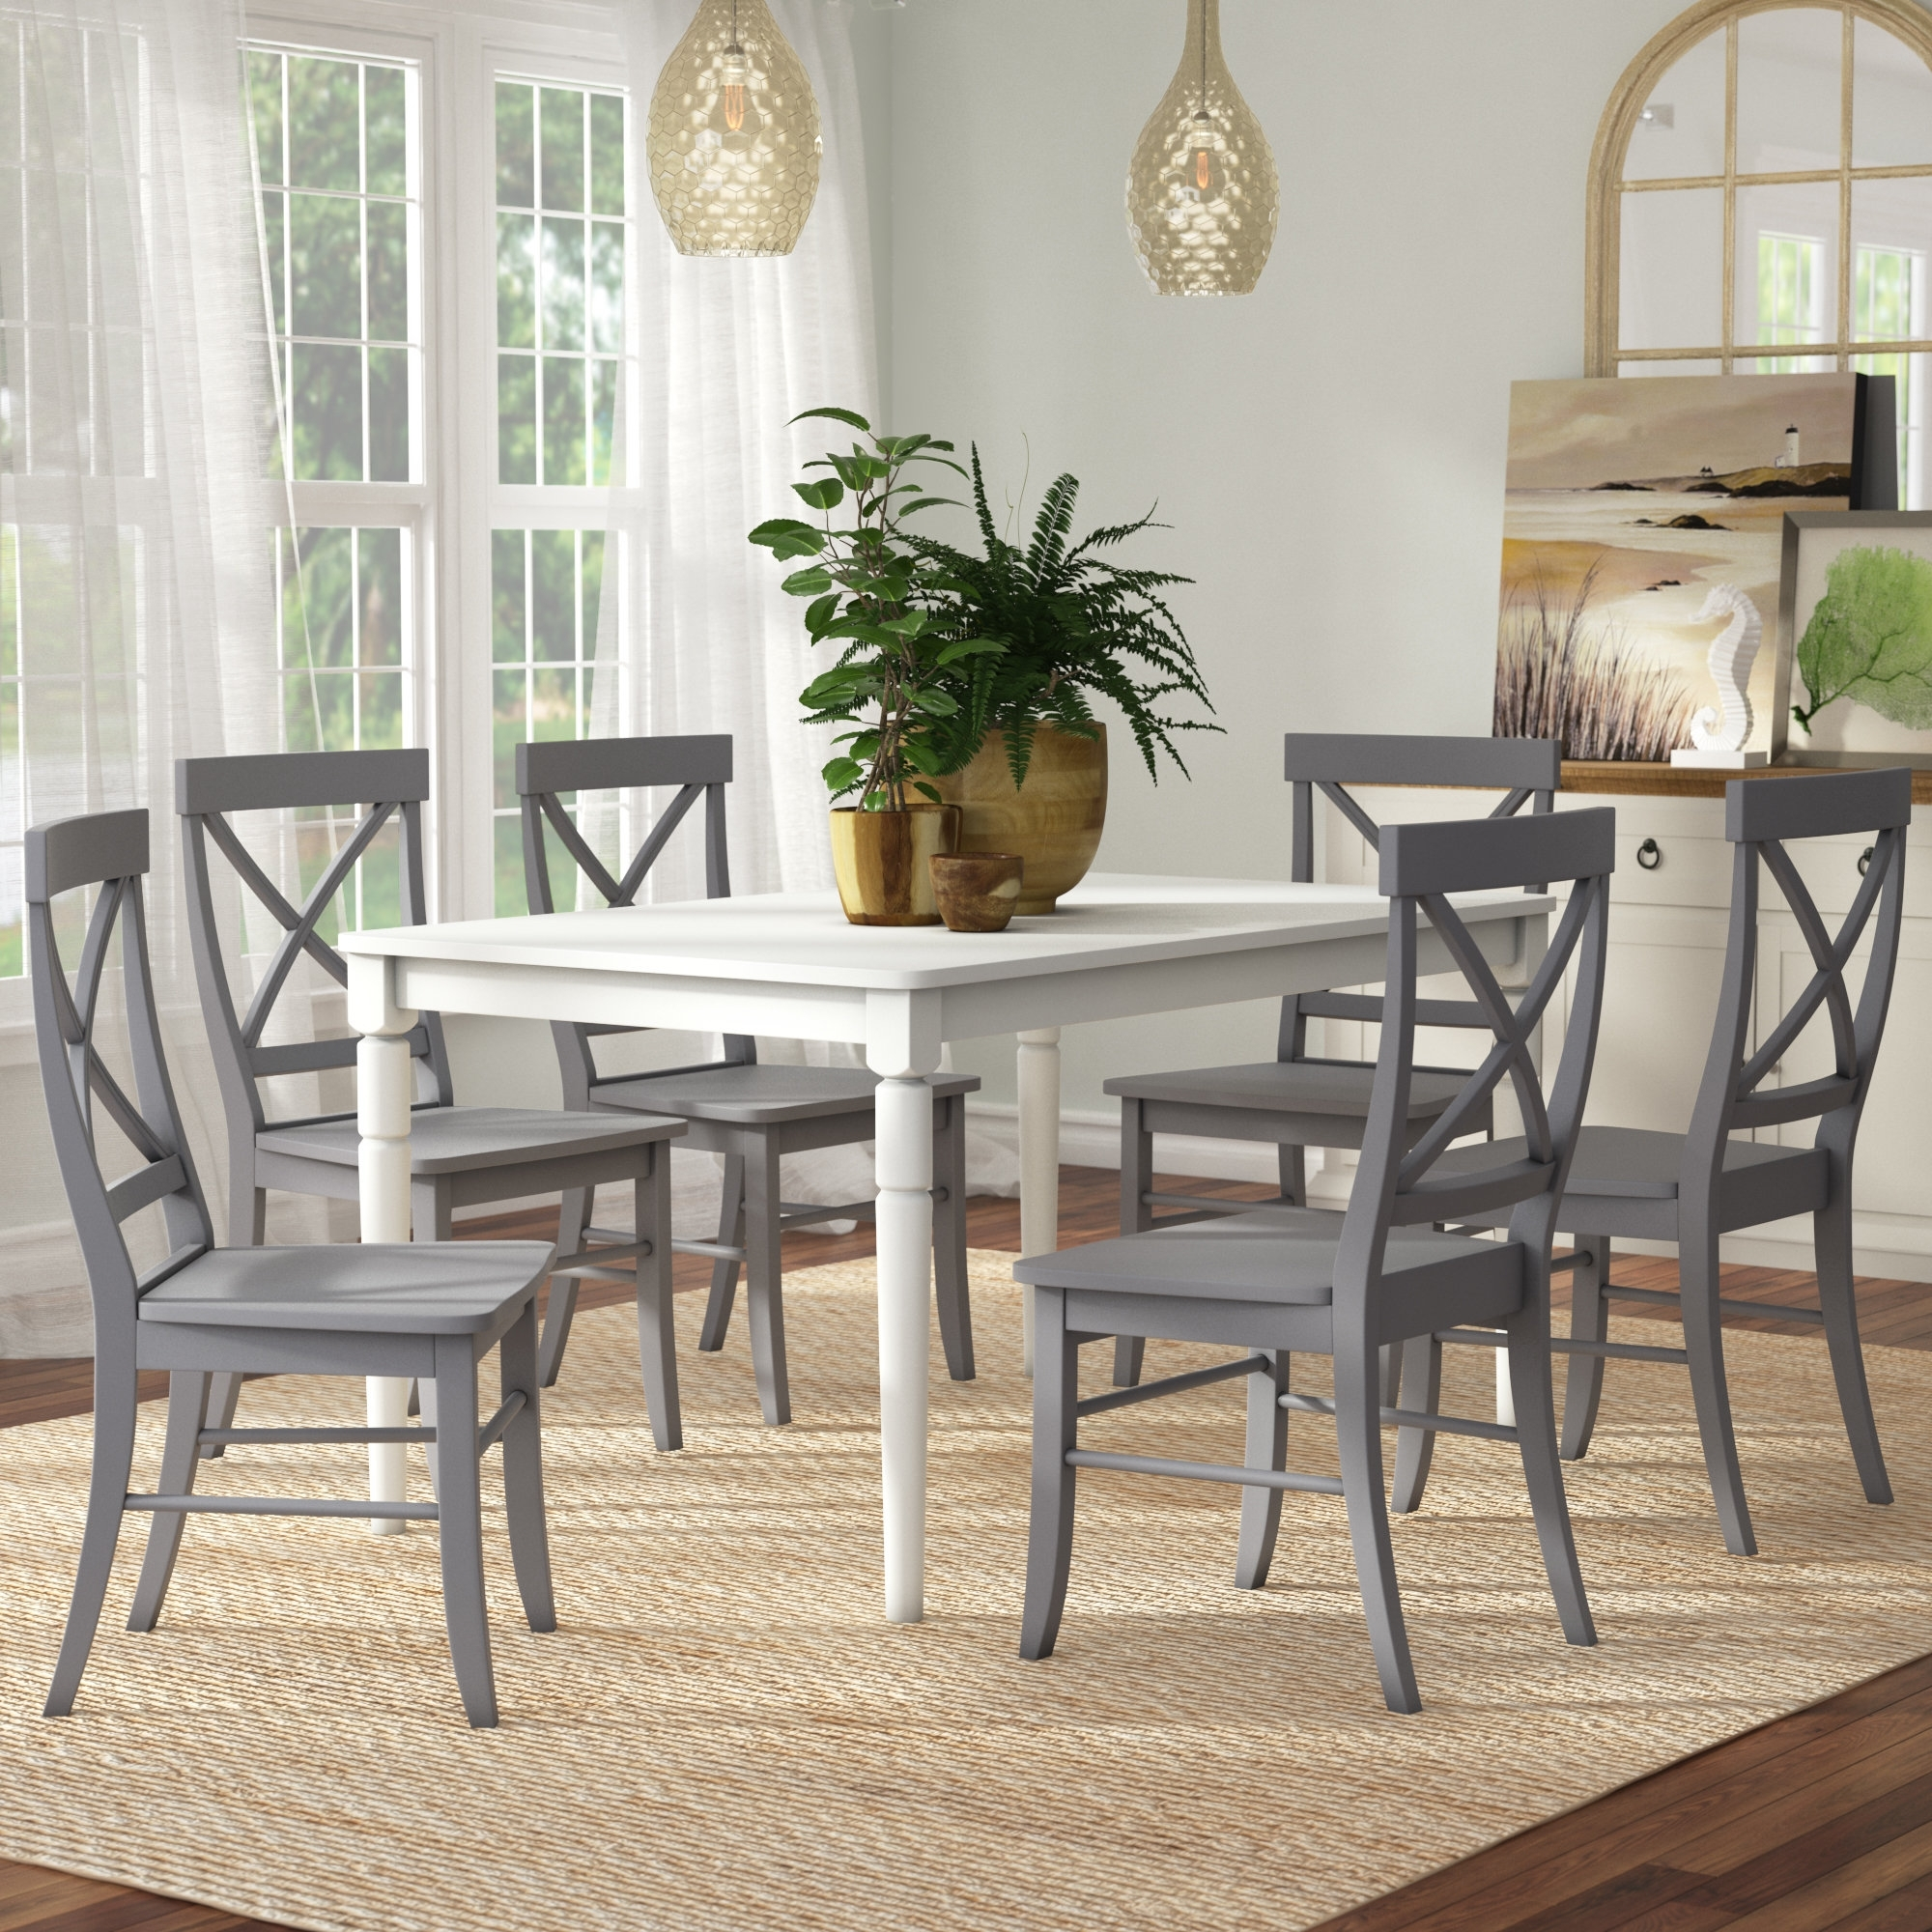 Most Recent Beachcrest Home Brookwood 7 Piece Dining Set & Reviews (Gallery 7 of 25)